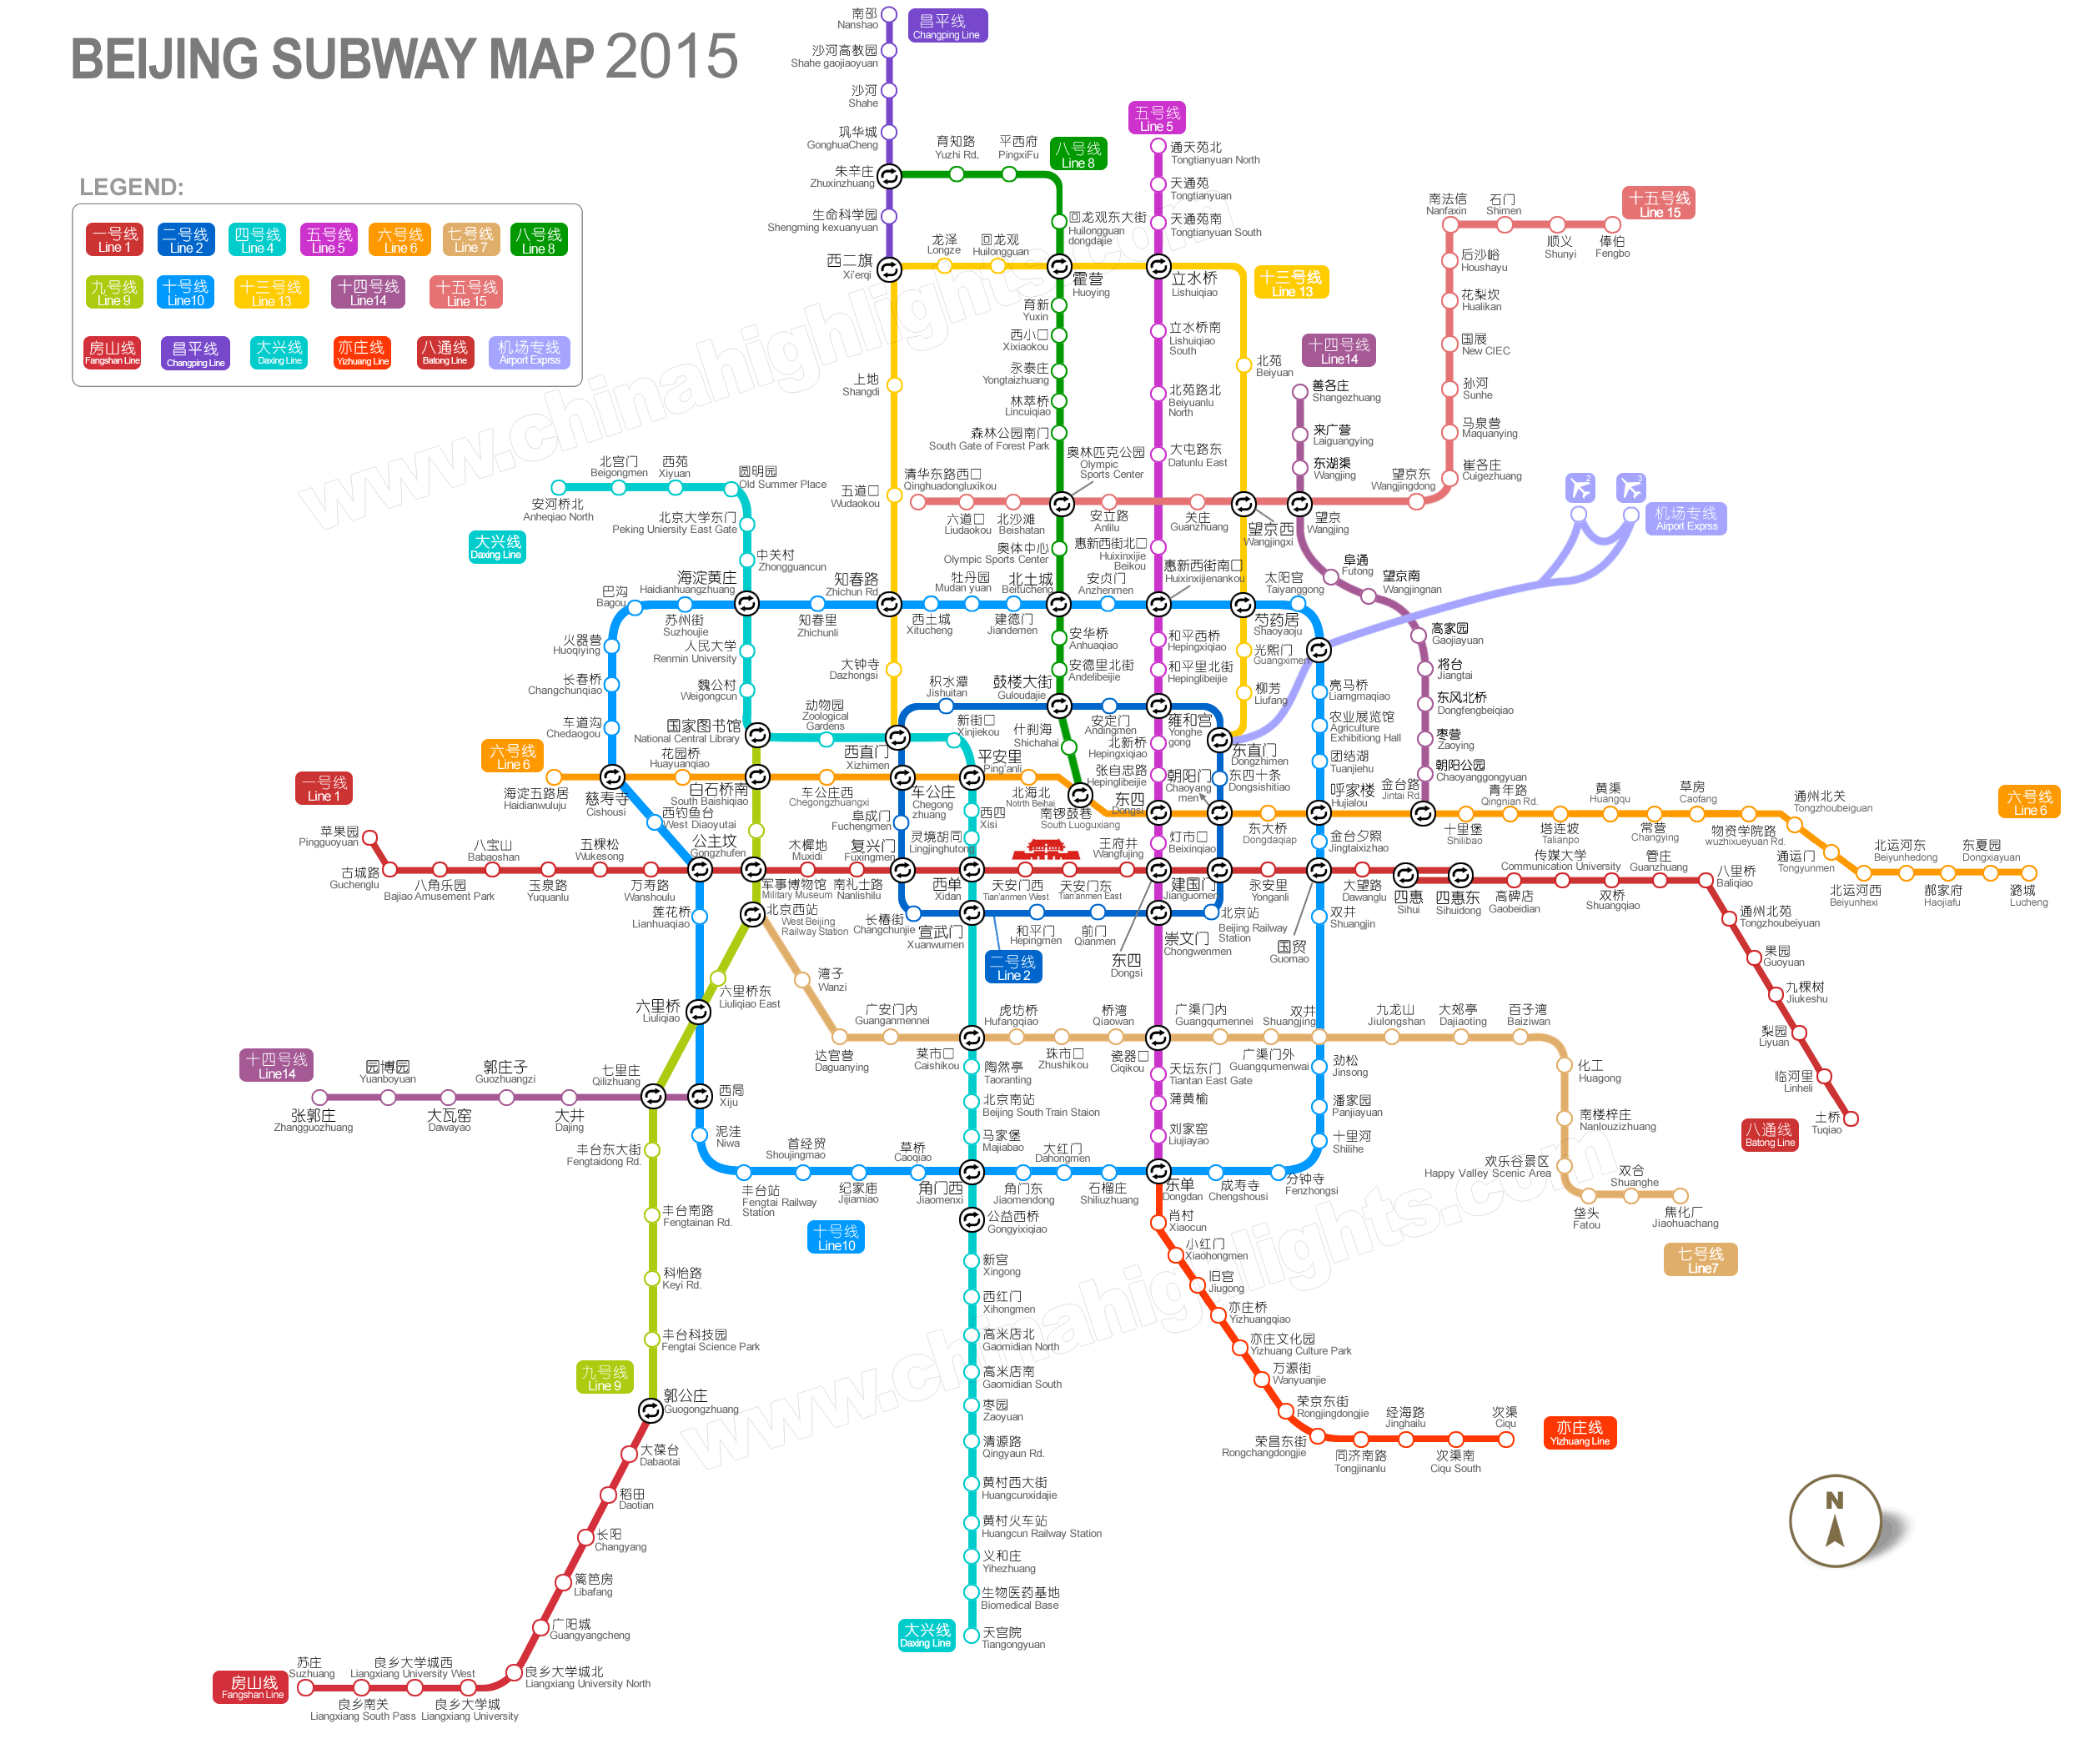 Subway Map Of Beijing.Beijing Subway Beijing Subway Map Beijing Subway Beijing Map